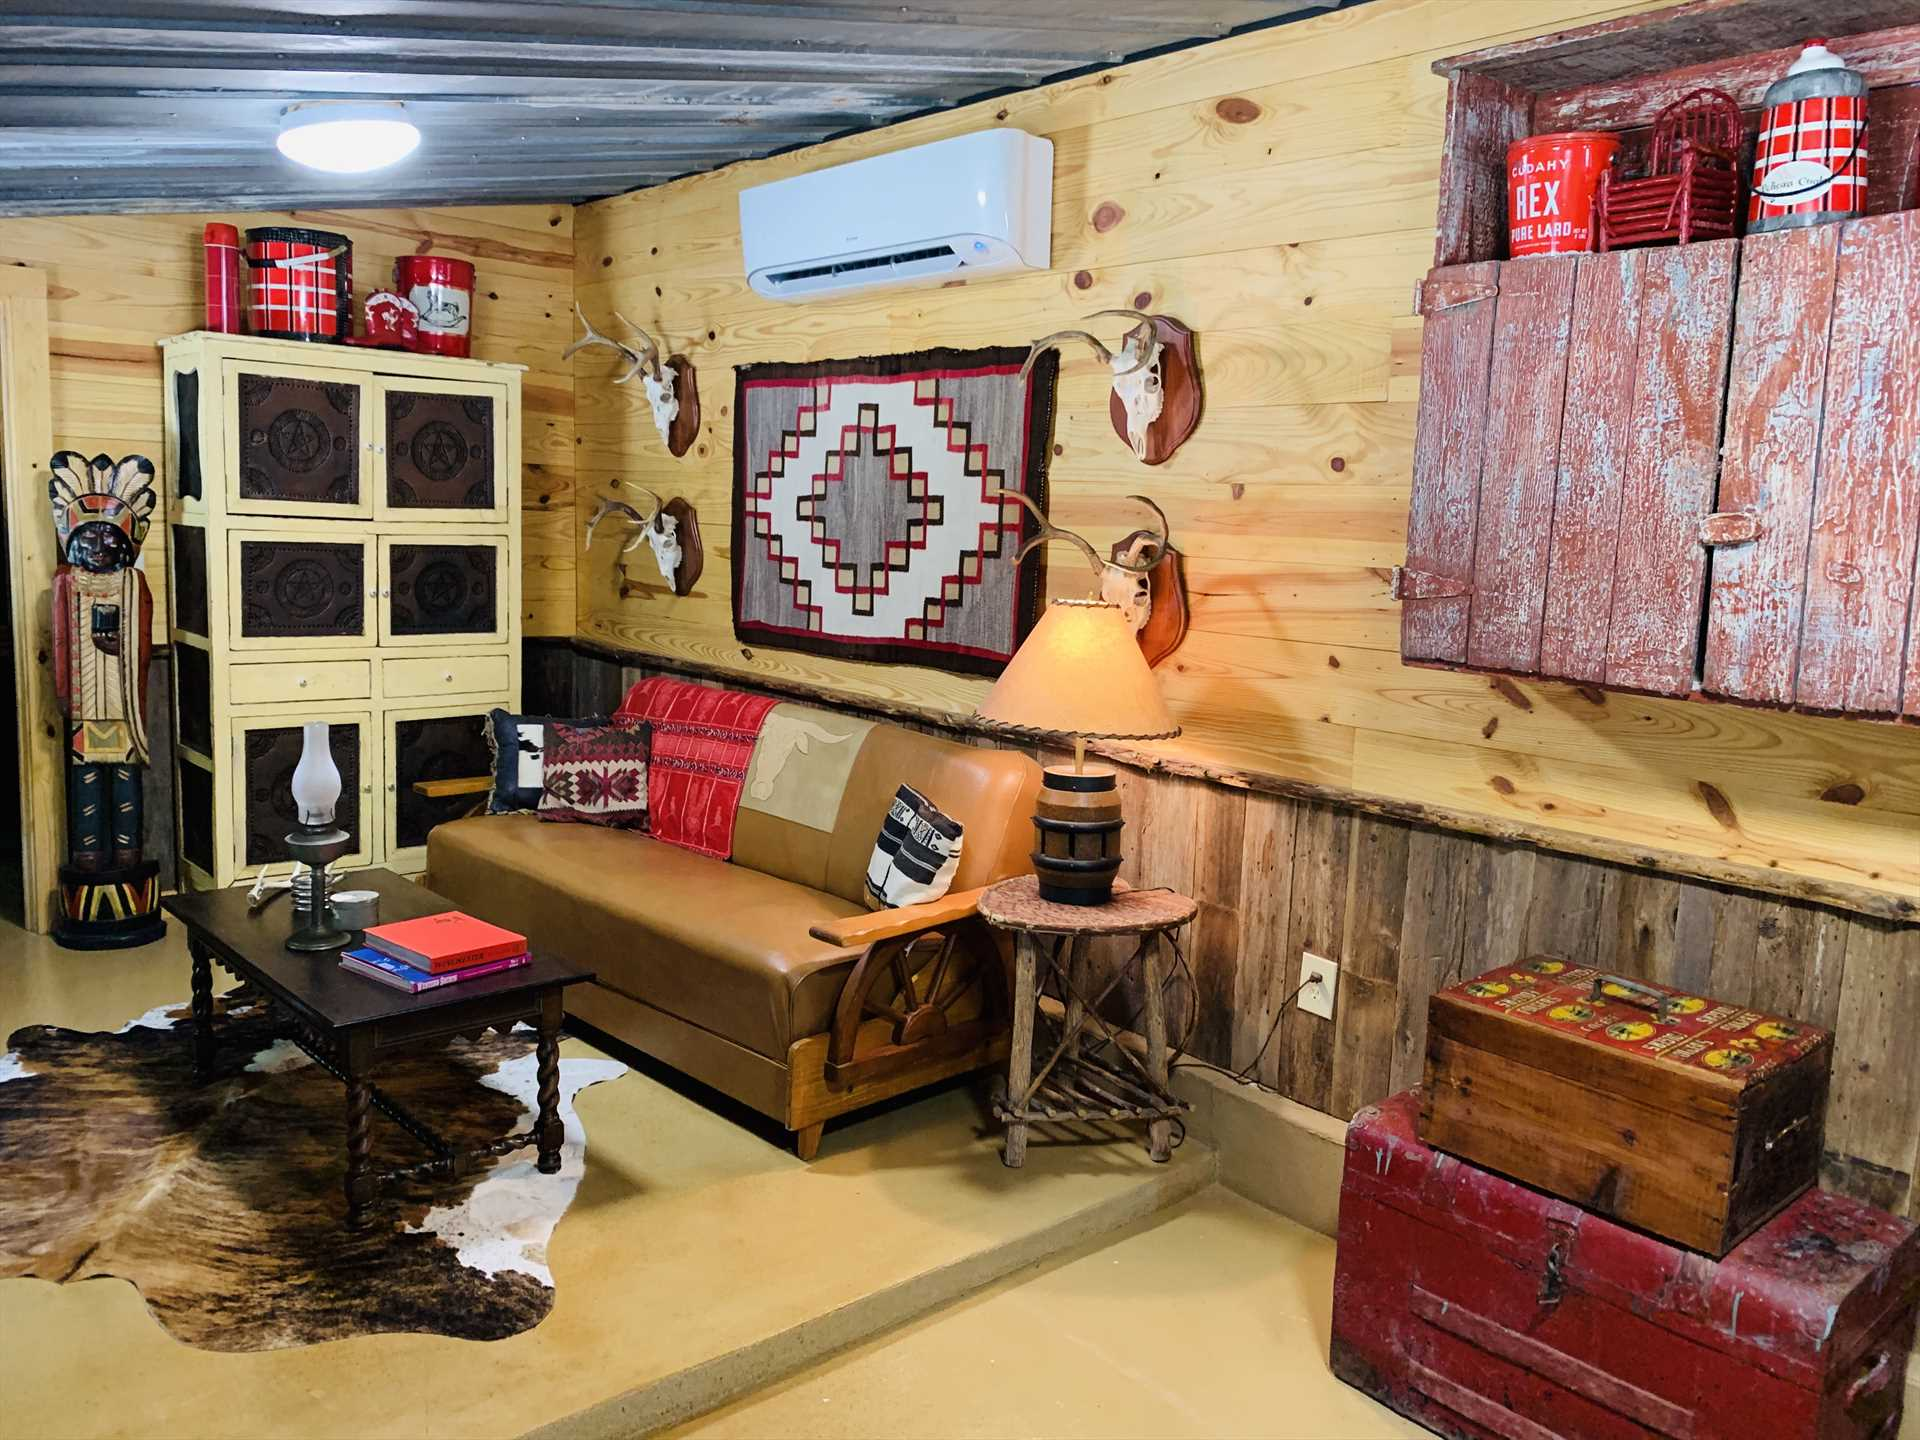 Dozens of awesome furnishings and decorations make the Vintage Cowboy cabin shine with a personality all its own!